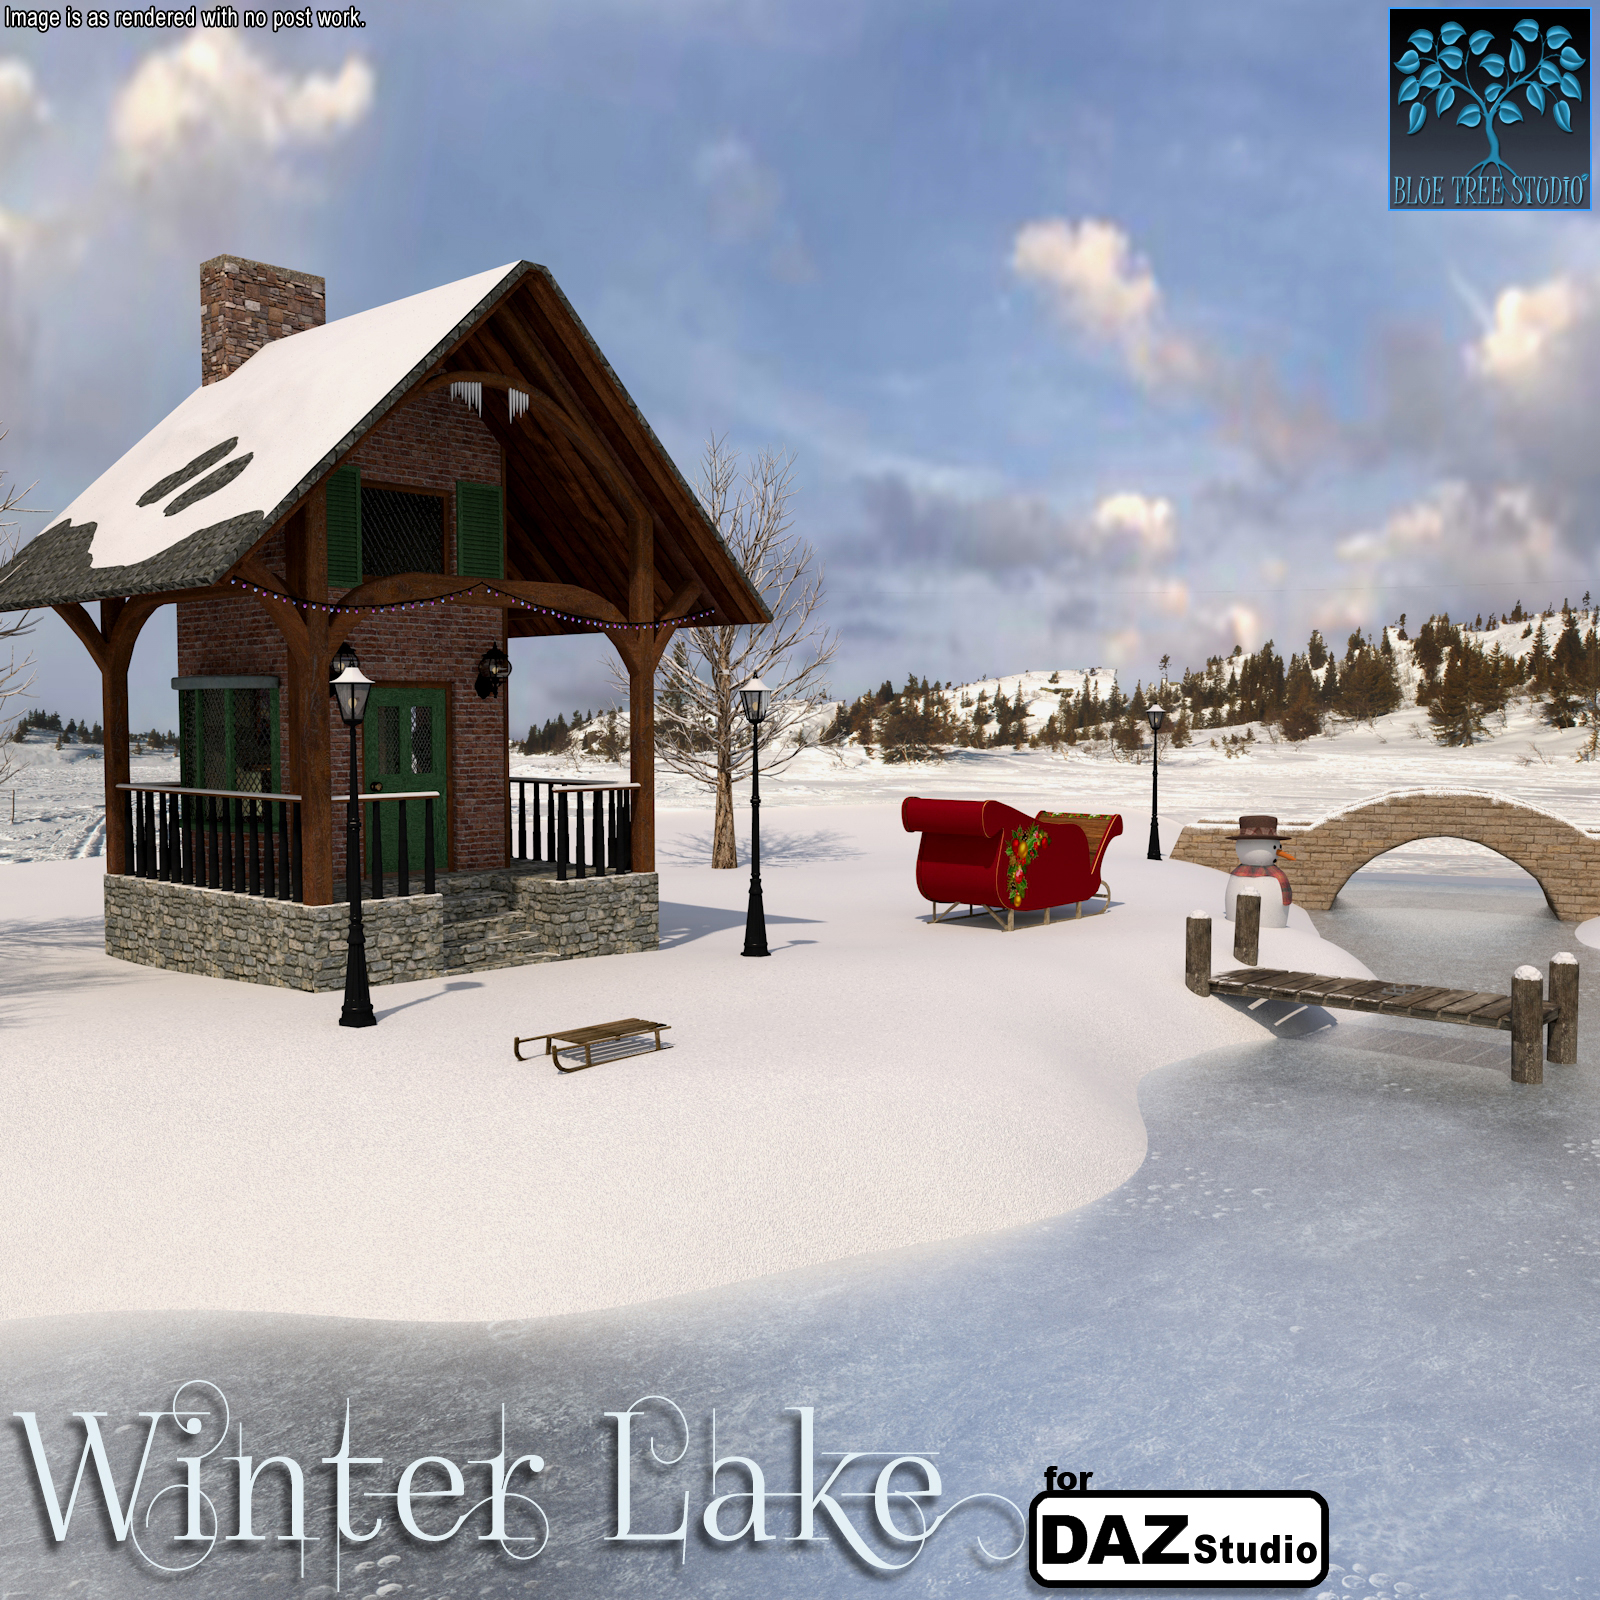 Winter Lake for Daz Studio